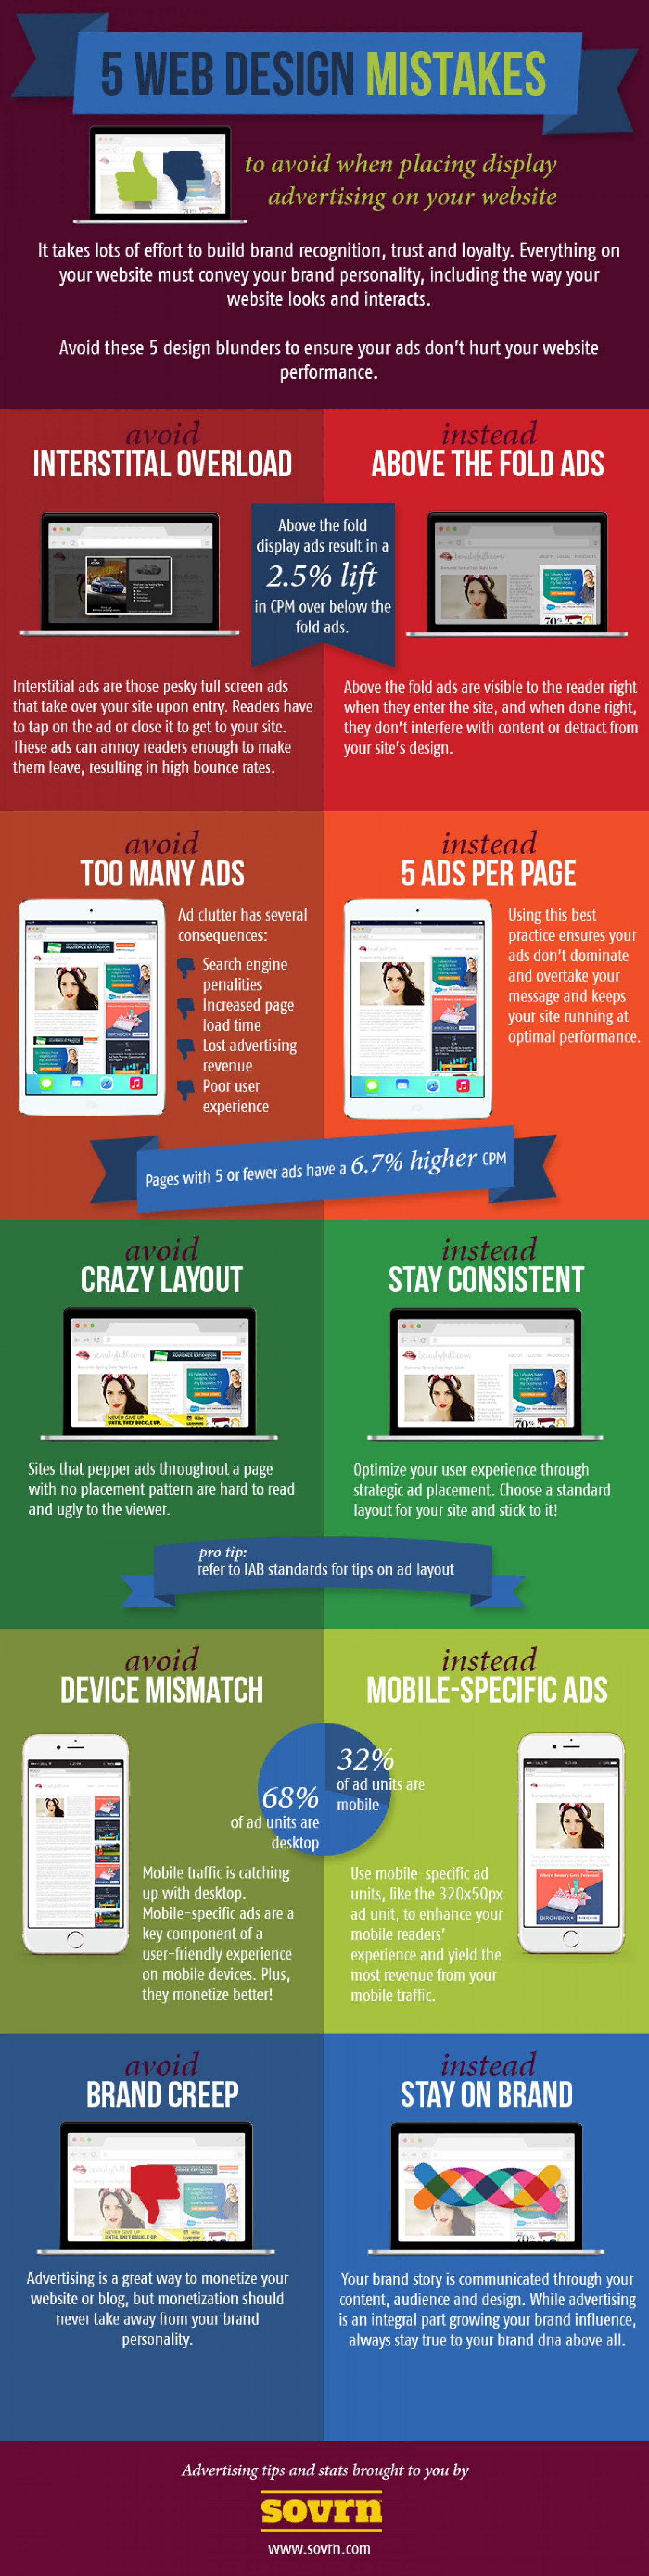 5 Display Advertising Mistakes That Hurt Your Web Design Infographic